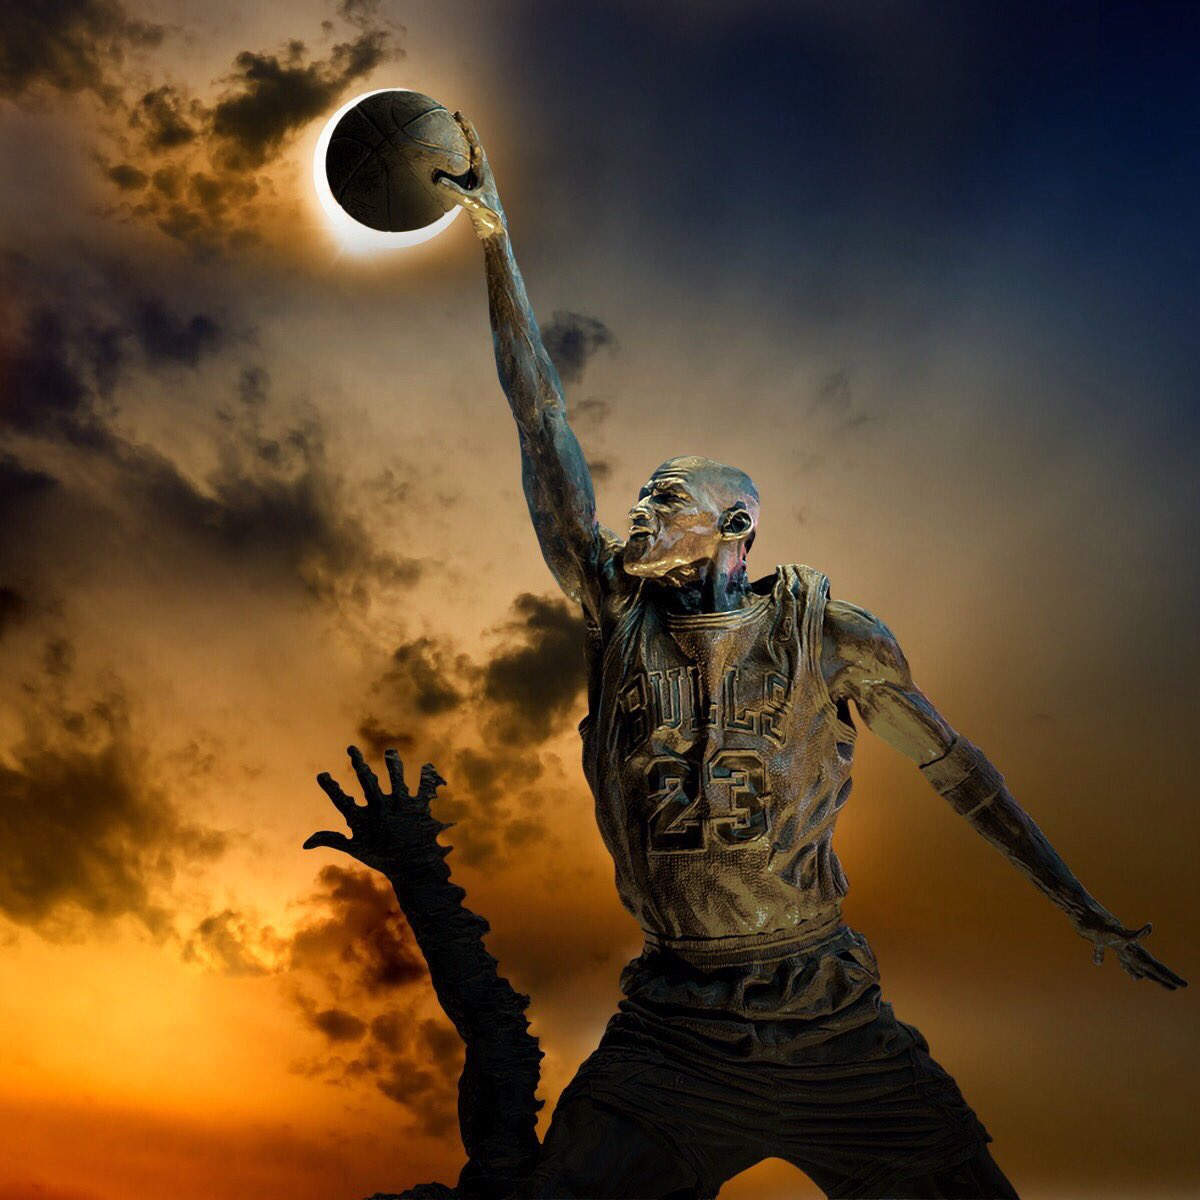 #eclispe the #greatest of all time <br>http://pic.twitter.com/I7oRcjUcwg